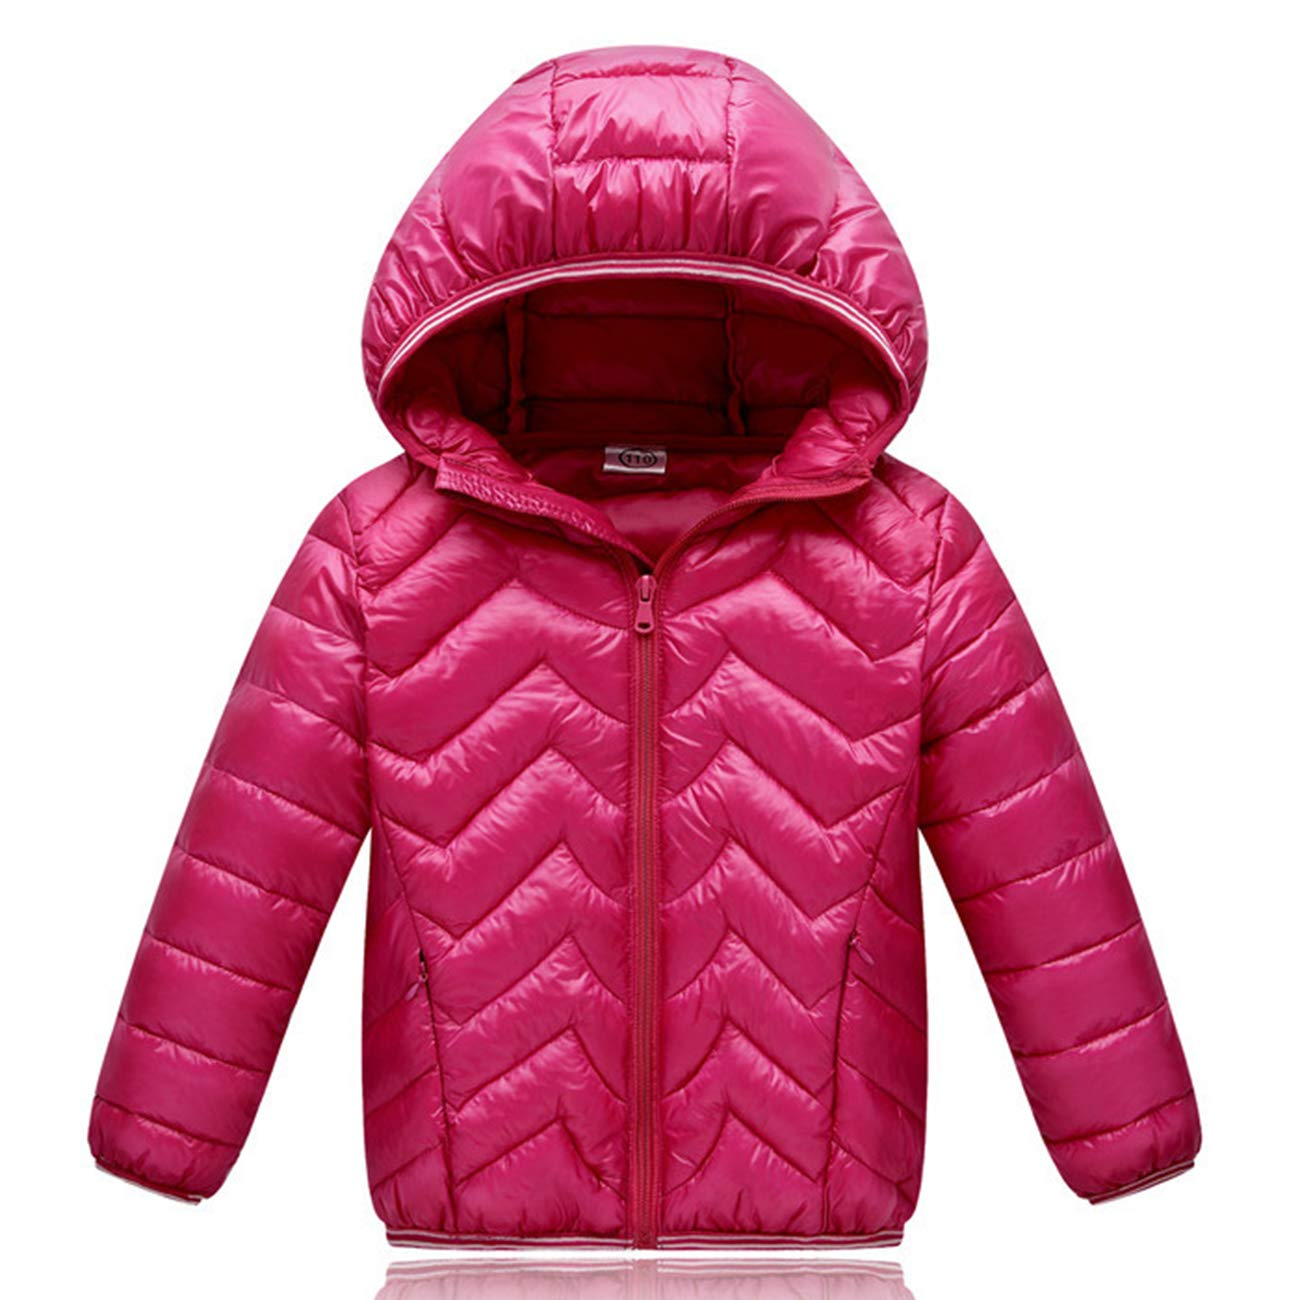 JIEEN Toddler Kids Girls Boys Coat Lightweight Puffer Down Coat Jacket,3-8 T